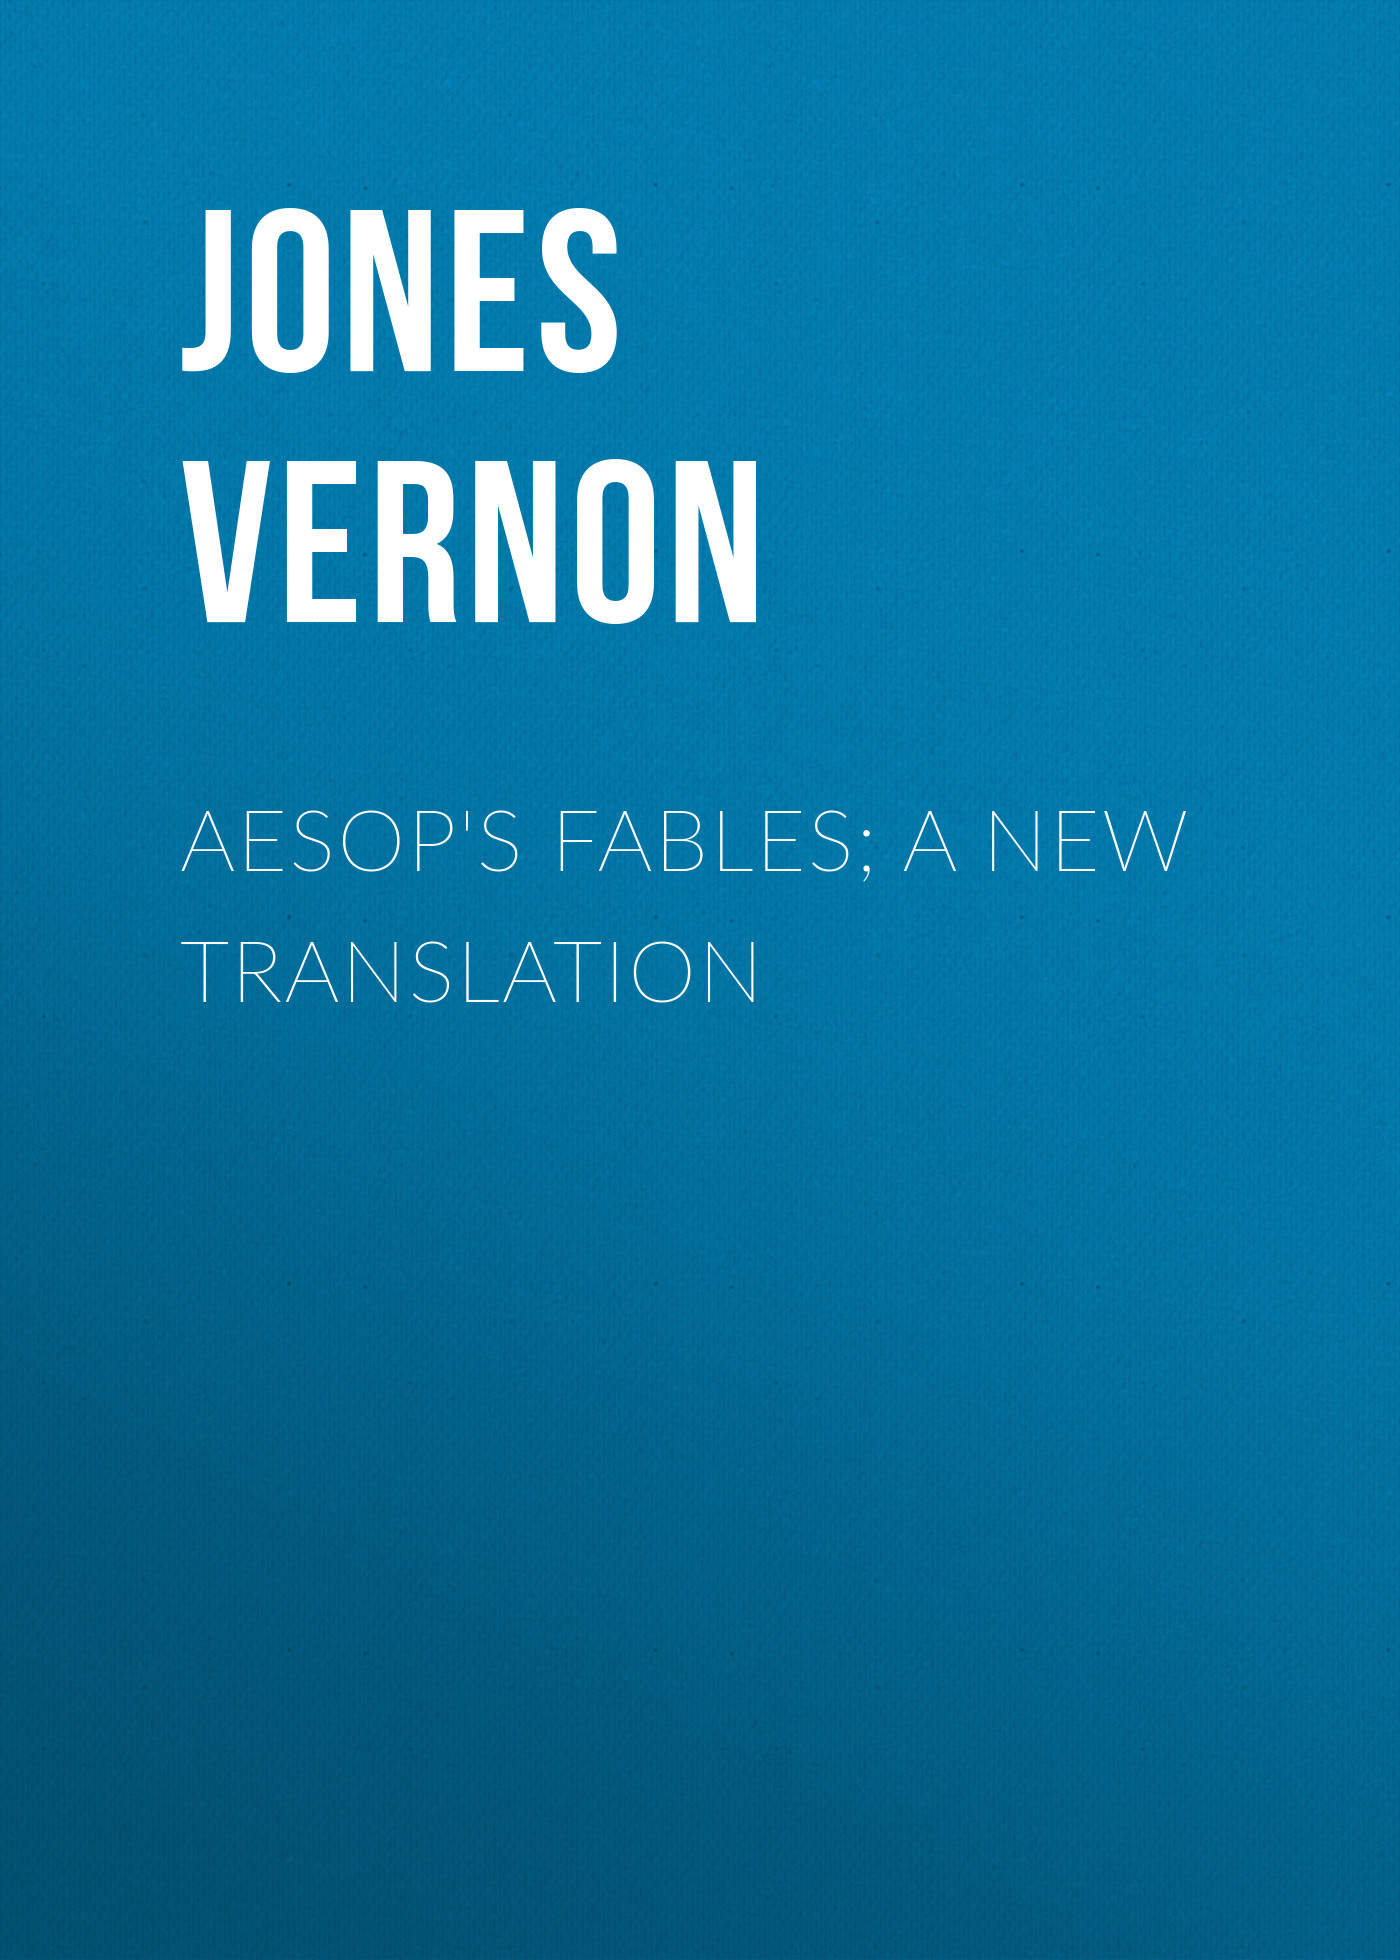 Jones Vernon Aesop's Fables; a new translation